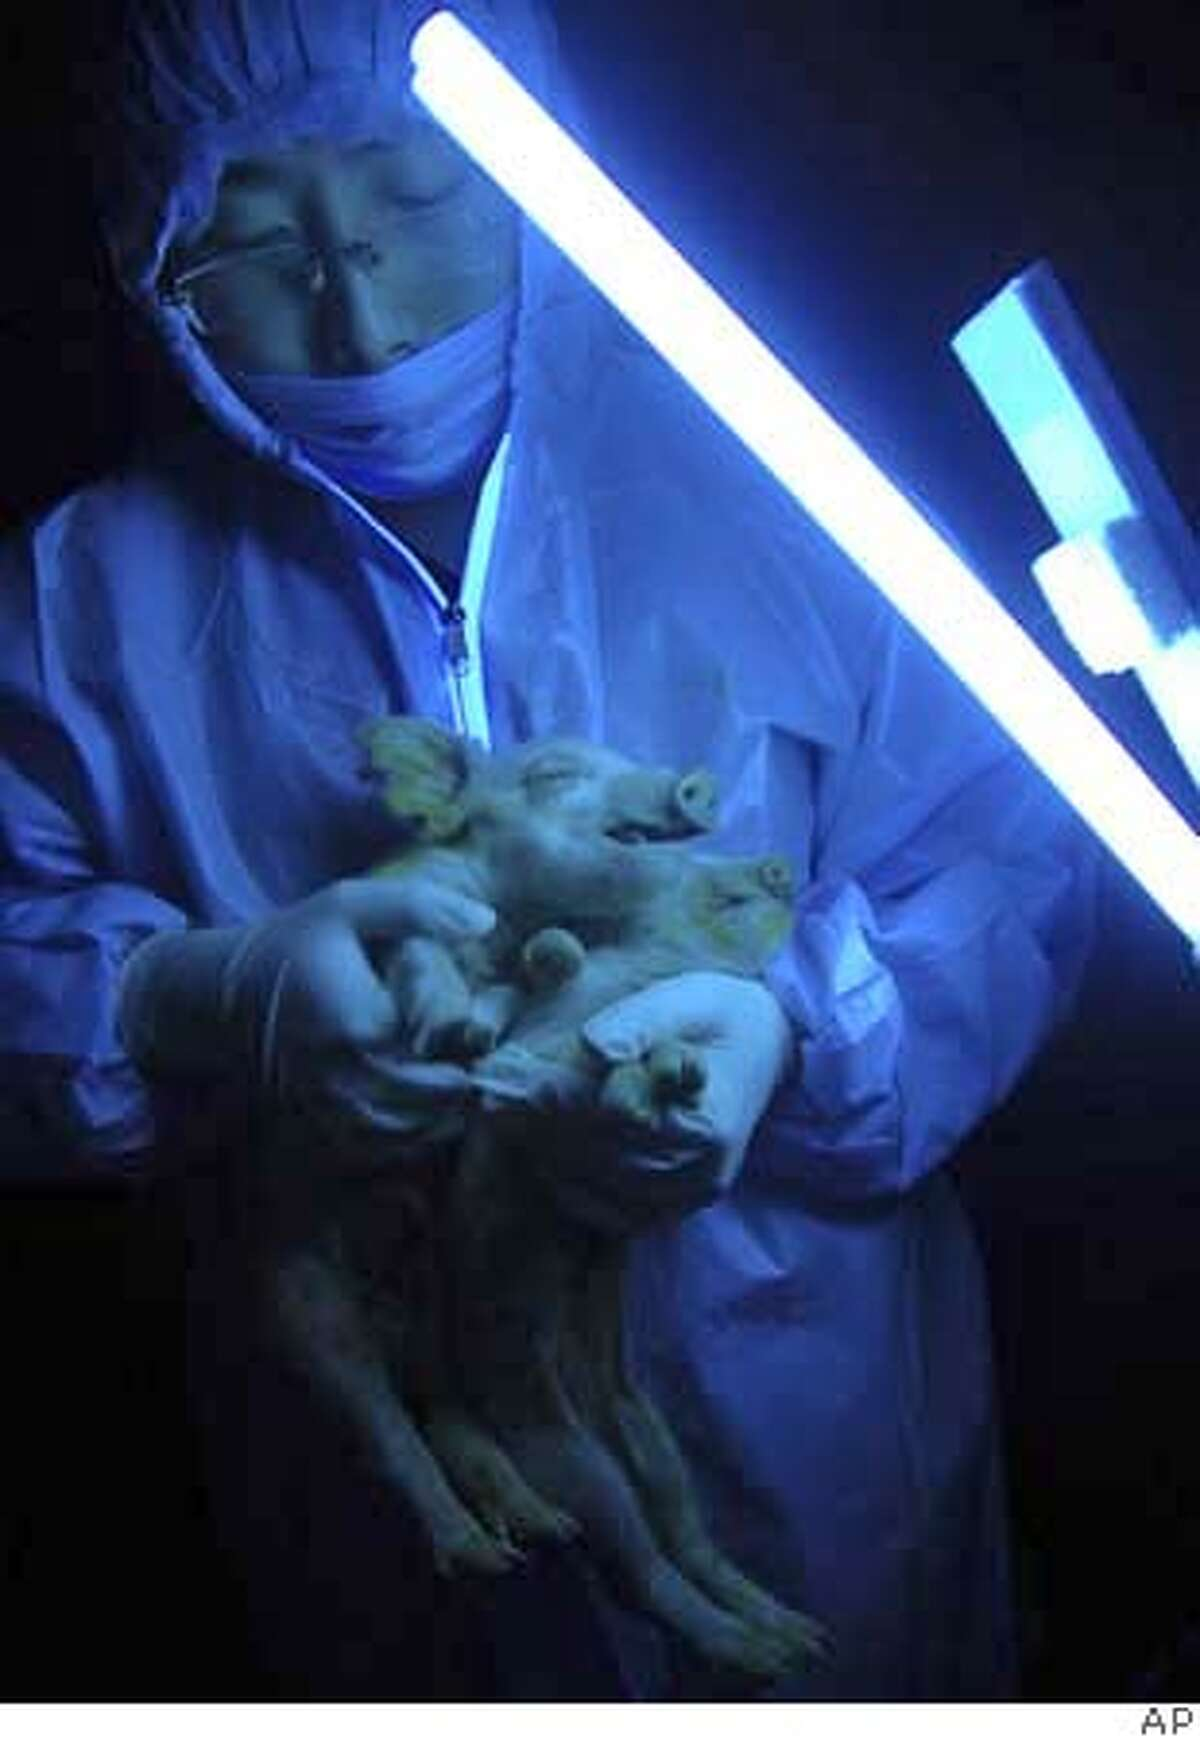 ** CORRECTS NAME OF COMPANY WHERE PHOTO WAS TAKEN ** A researcher holds up two piglets born from a cloned pig under ultraviolet light to show the fluorescent green glow from their snout, trotters, and tongue at the Harbin Sanyuan Animal Husbandry Industrial Company, a subsidiary institute of the Northeast Agricultural University in Harbin, northeastern China' Heilongjiang province, Monday, Jan 7, 2008. The cloned pig whose genes were altered to make it glow fluorescent green has passed on the trait to its young, a development that could lead to the future breeding of pigs for human transplant organs, the Northeast Agricultural University reported Tuesday.(AP Photo) ** CHINA OUT ** ** CORRECTS NAME OF COMPANY WHERE PHOTO WAS TAKEN ** CHINA OUT JAN 7, 2008 PHOTO